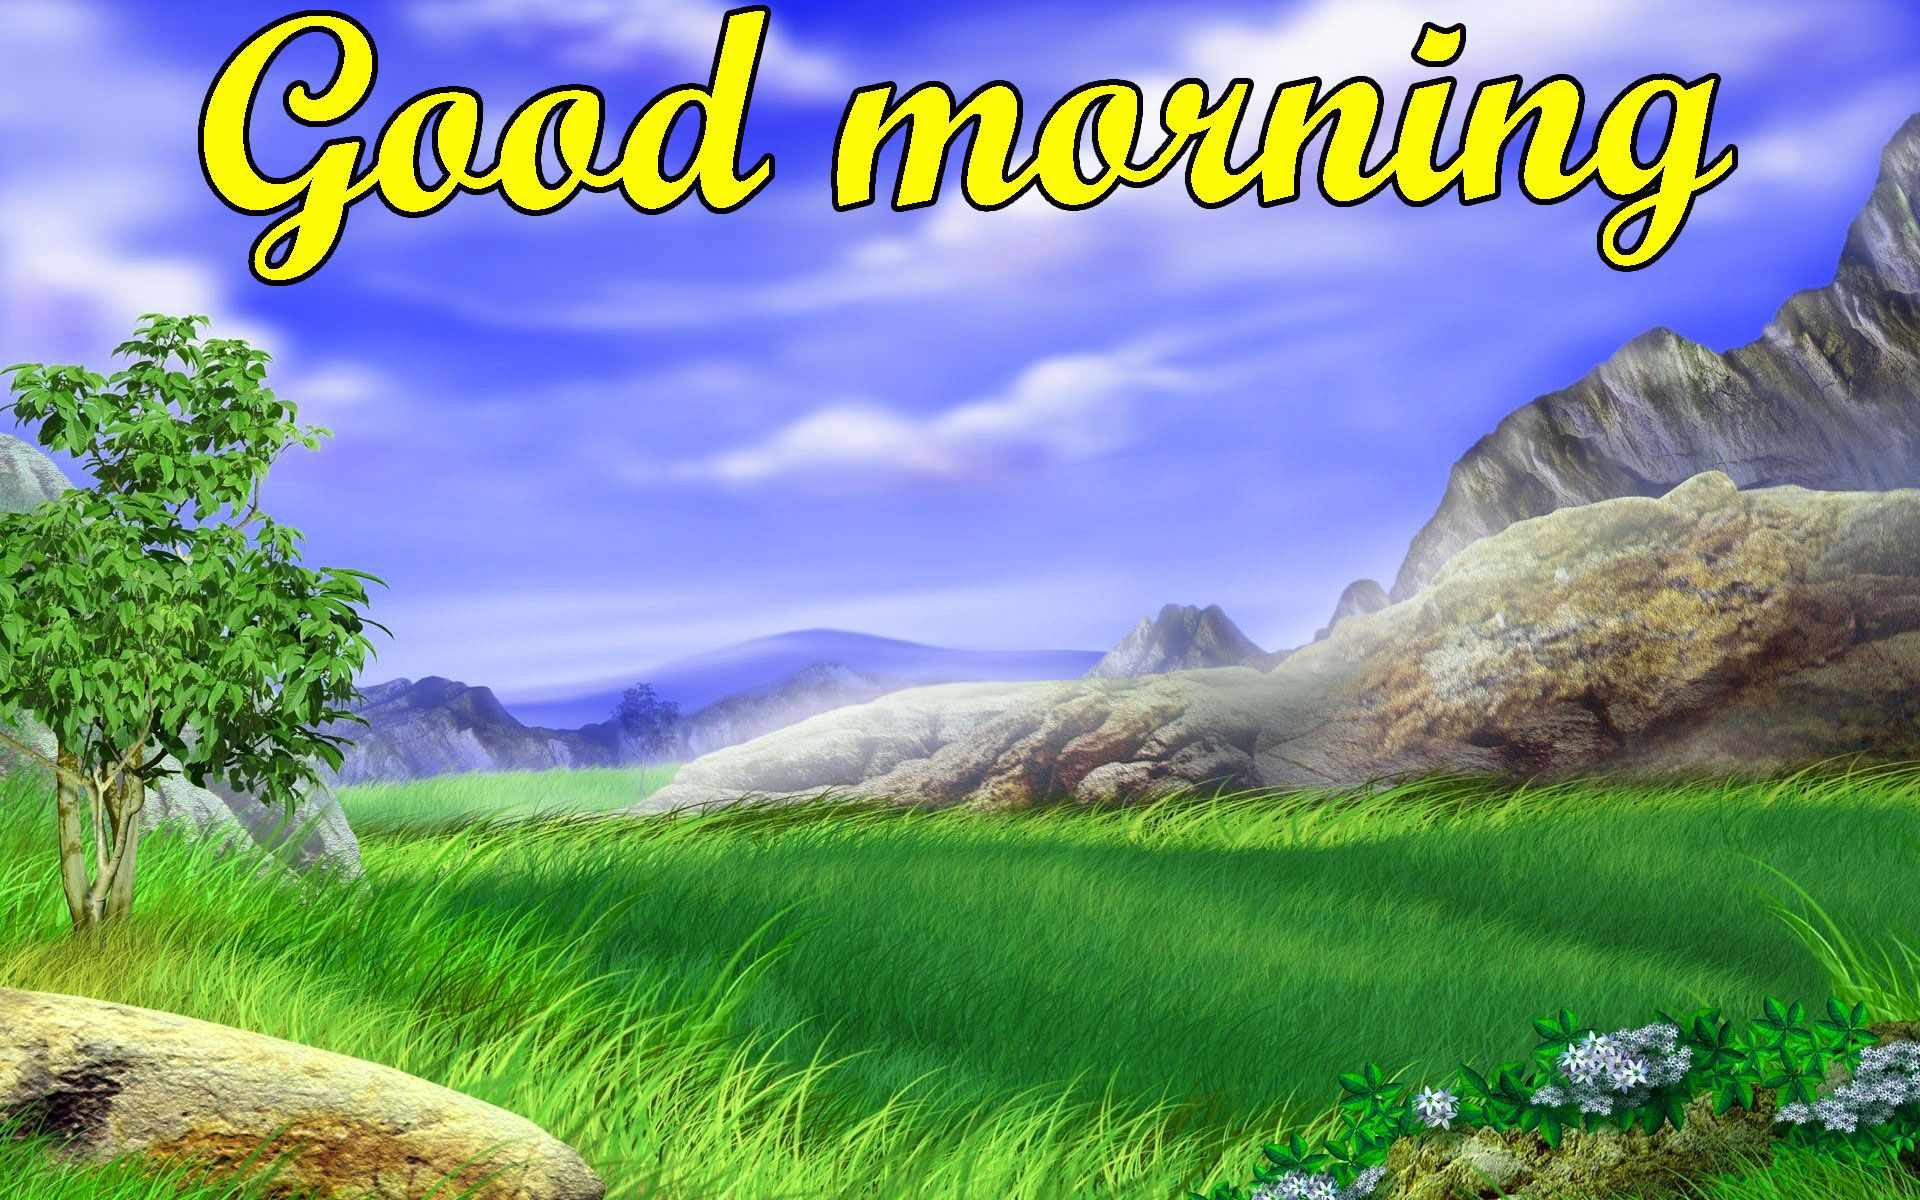 Good Morning Beautiful Scenery Wallpapers On Wallpaperdog